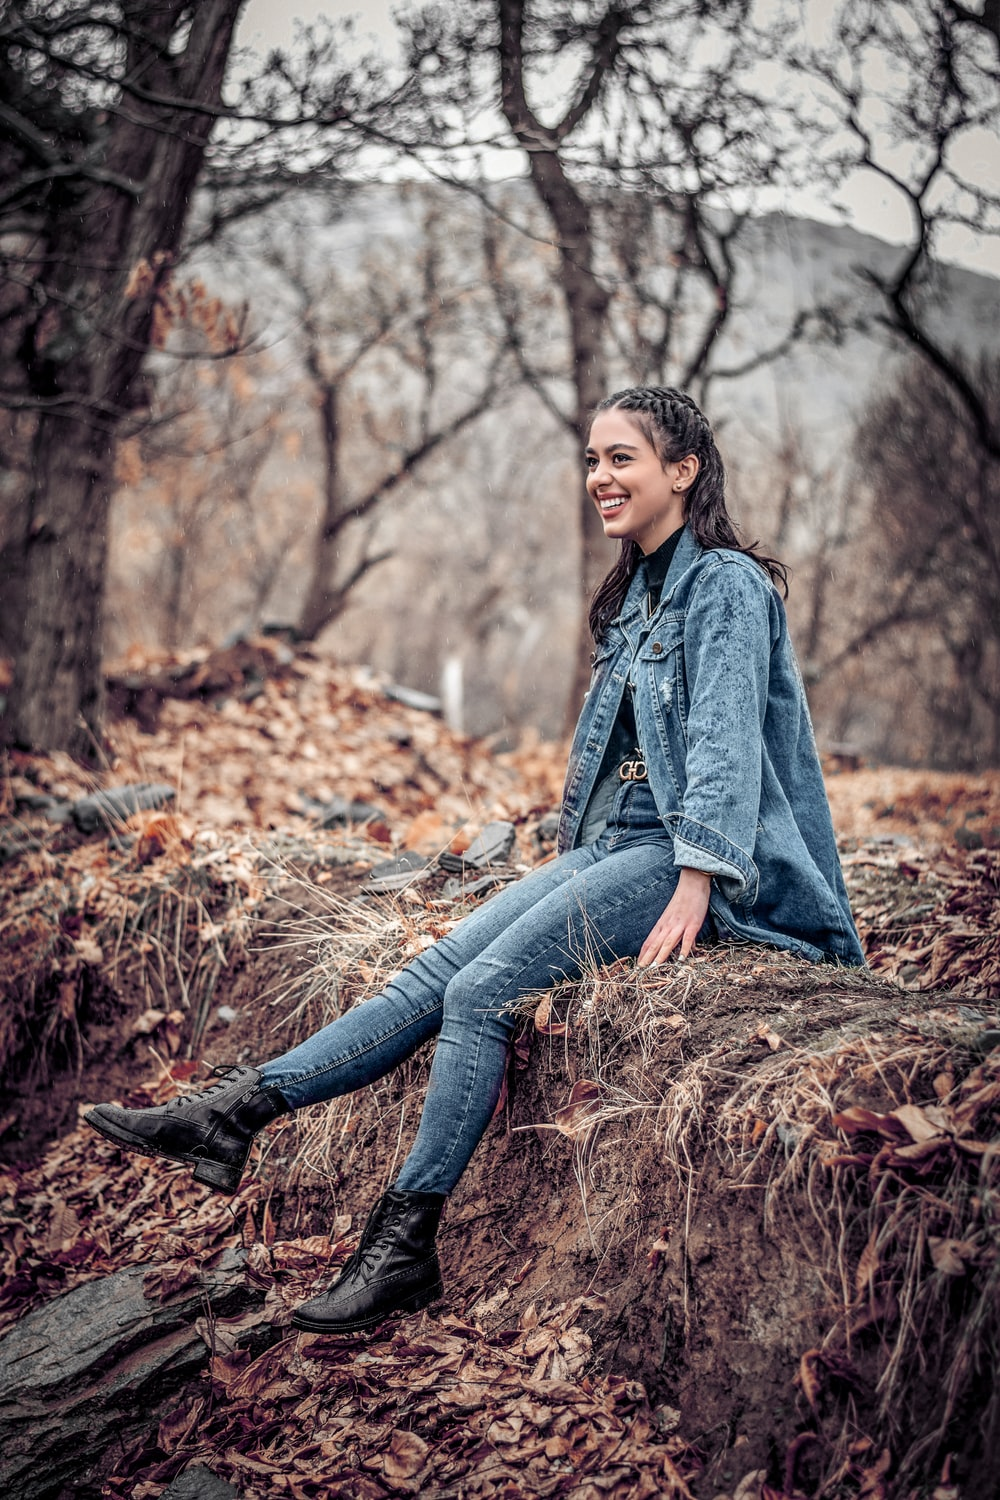 woman smiling and sitting on soil ground near trees